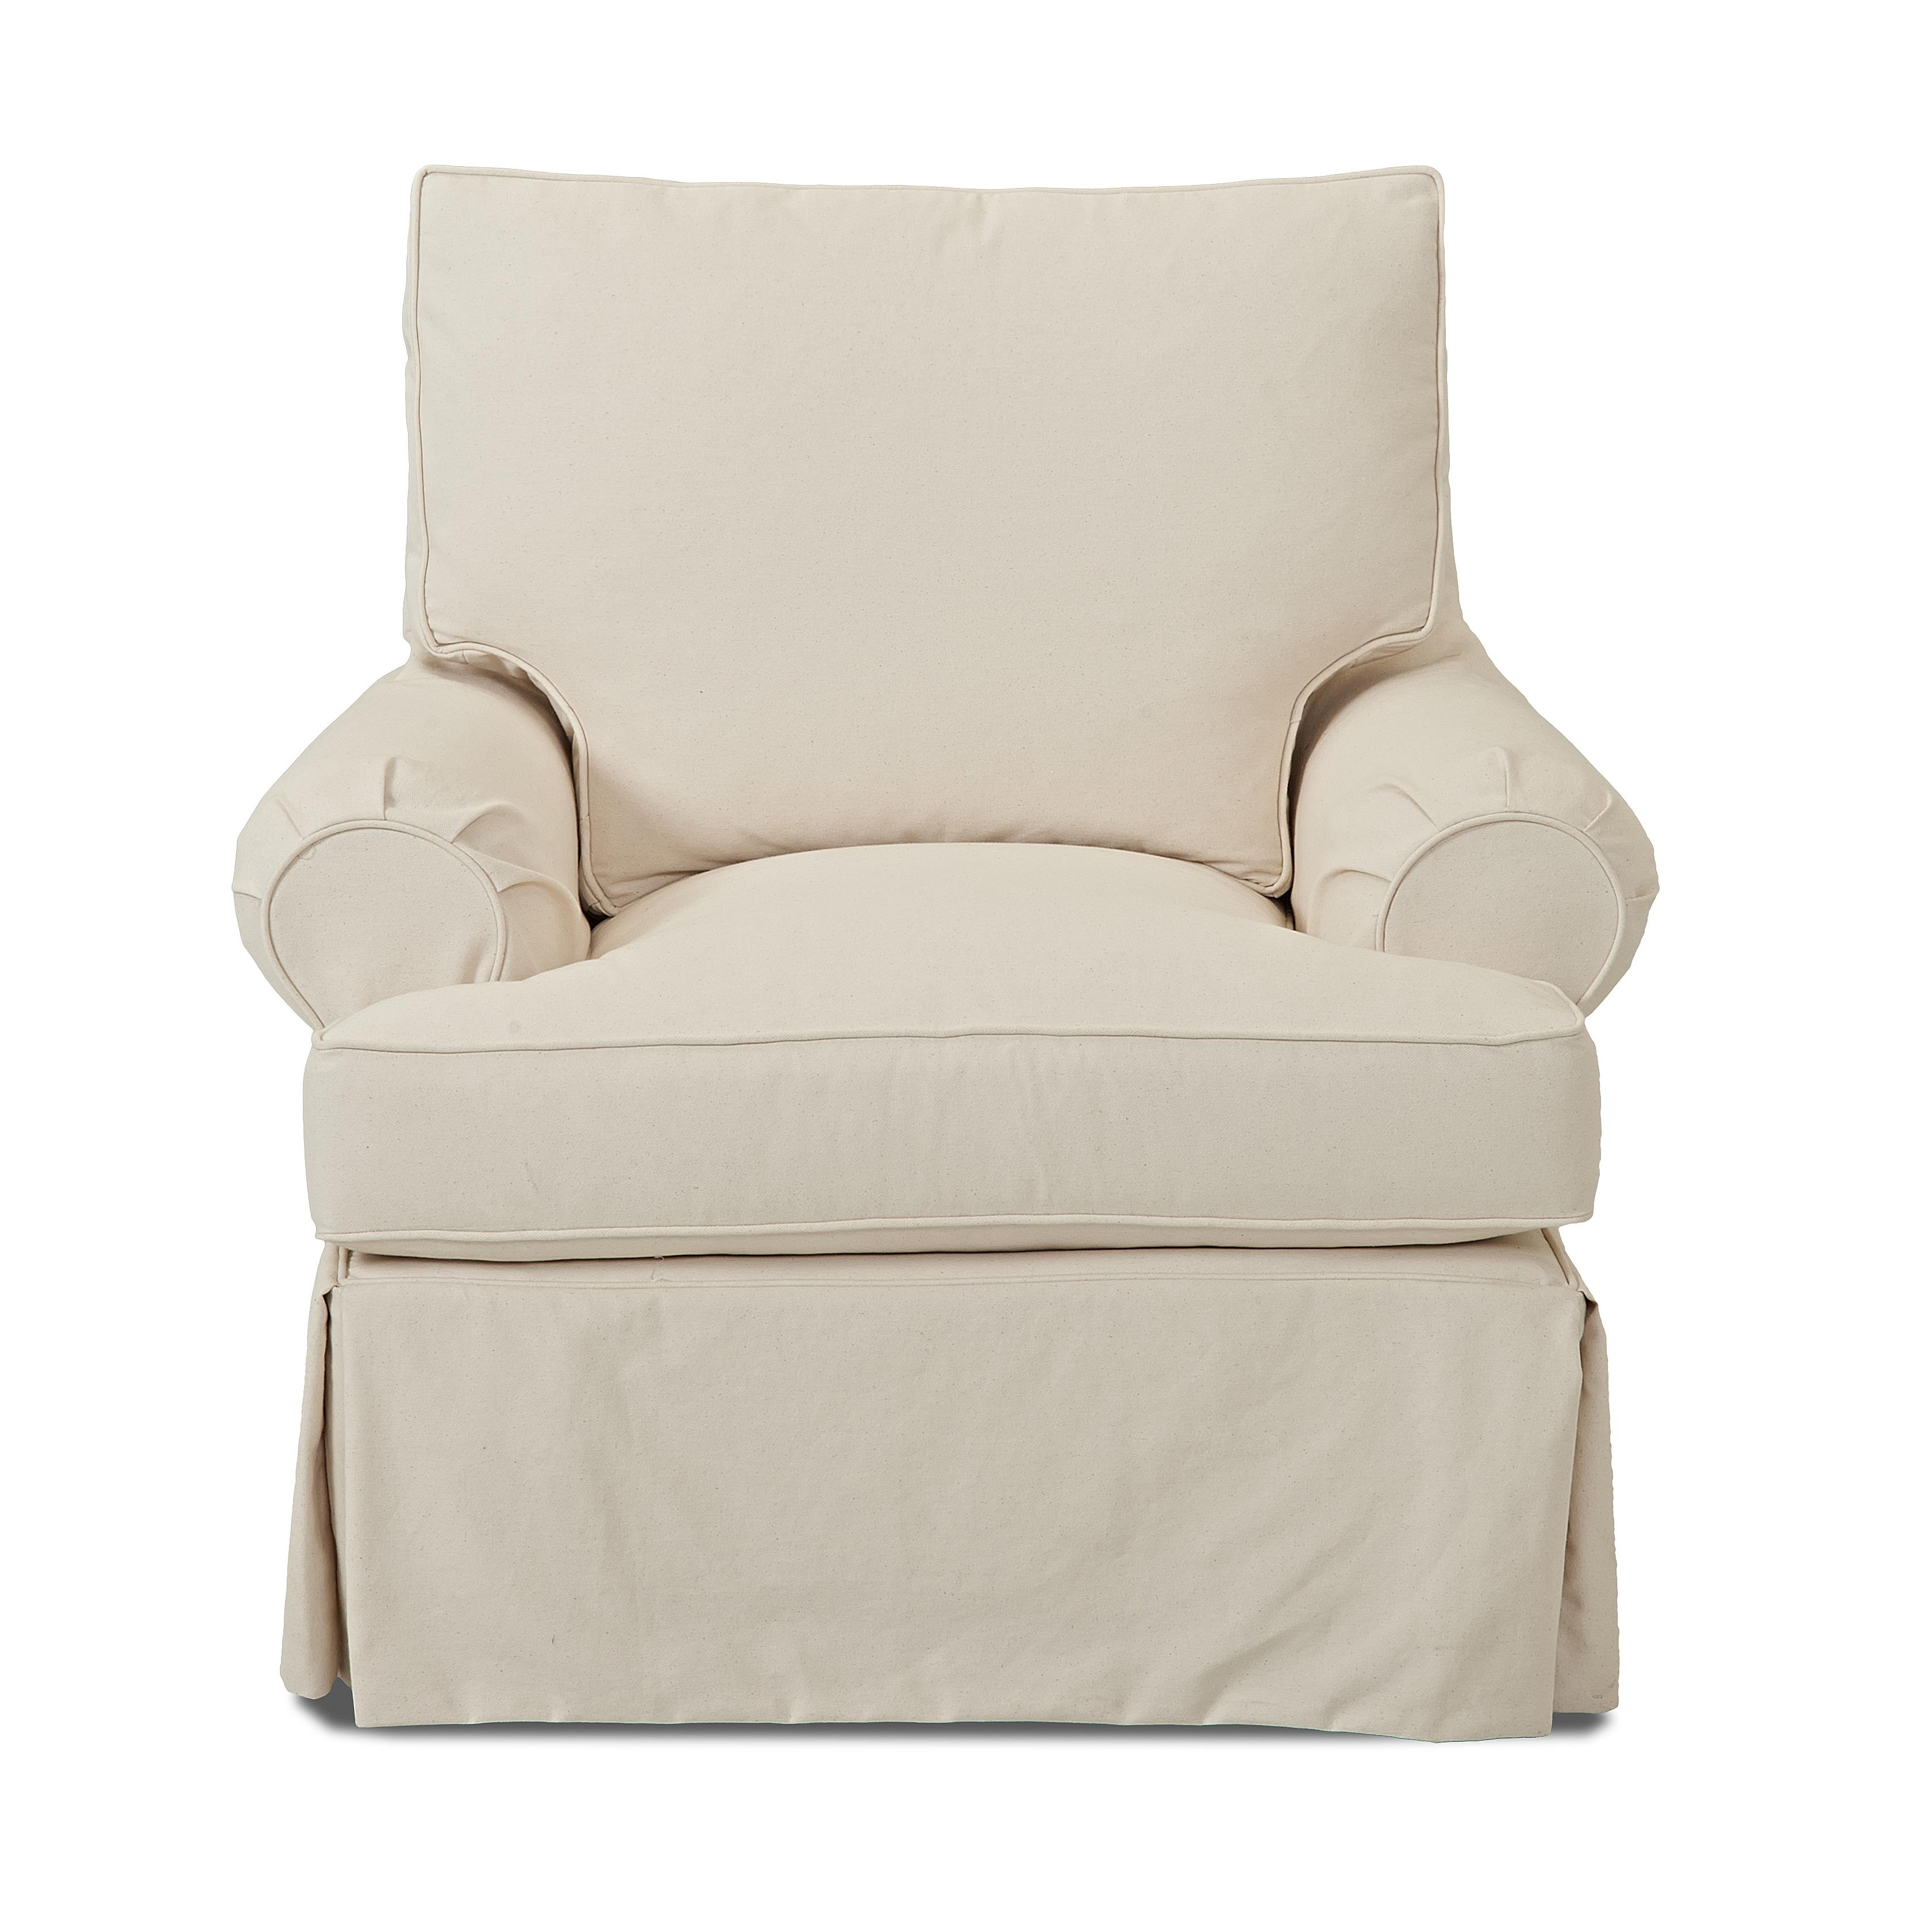 Carolina Swivel Glider Chair w/ Slipcover by Klaussner at Northeast Factory Direct